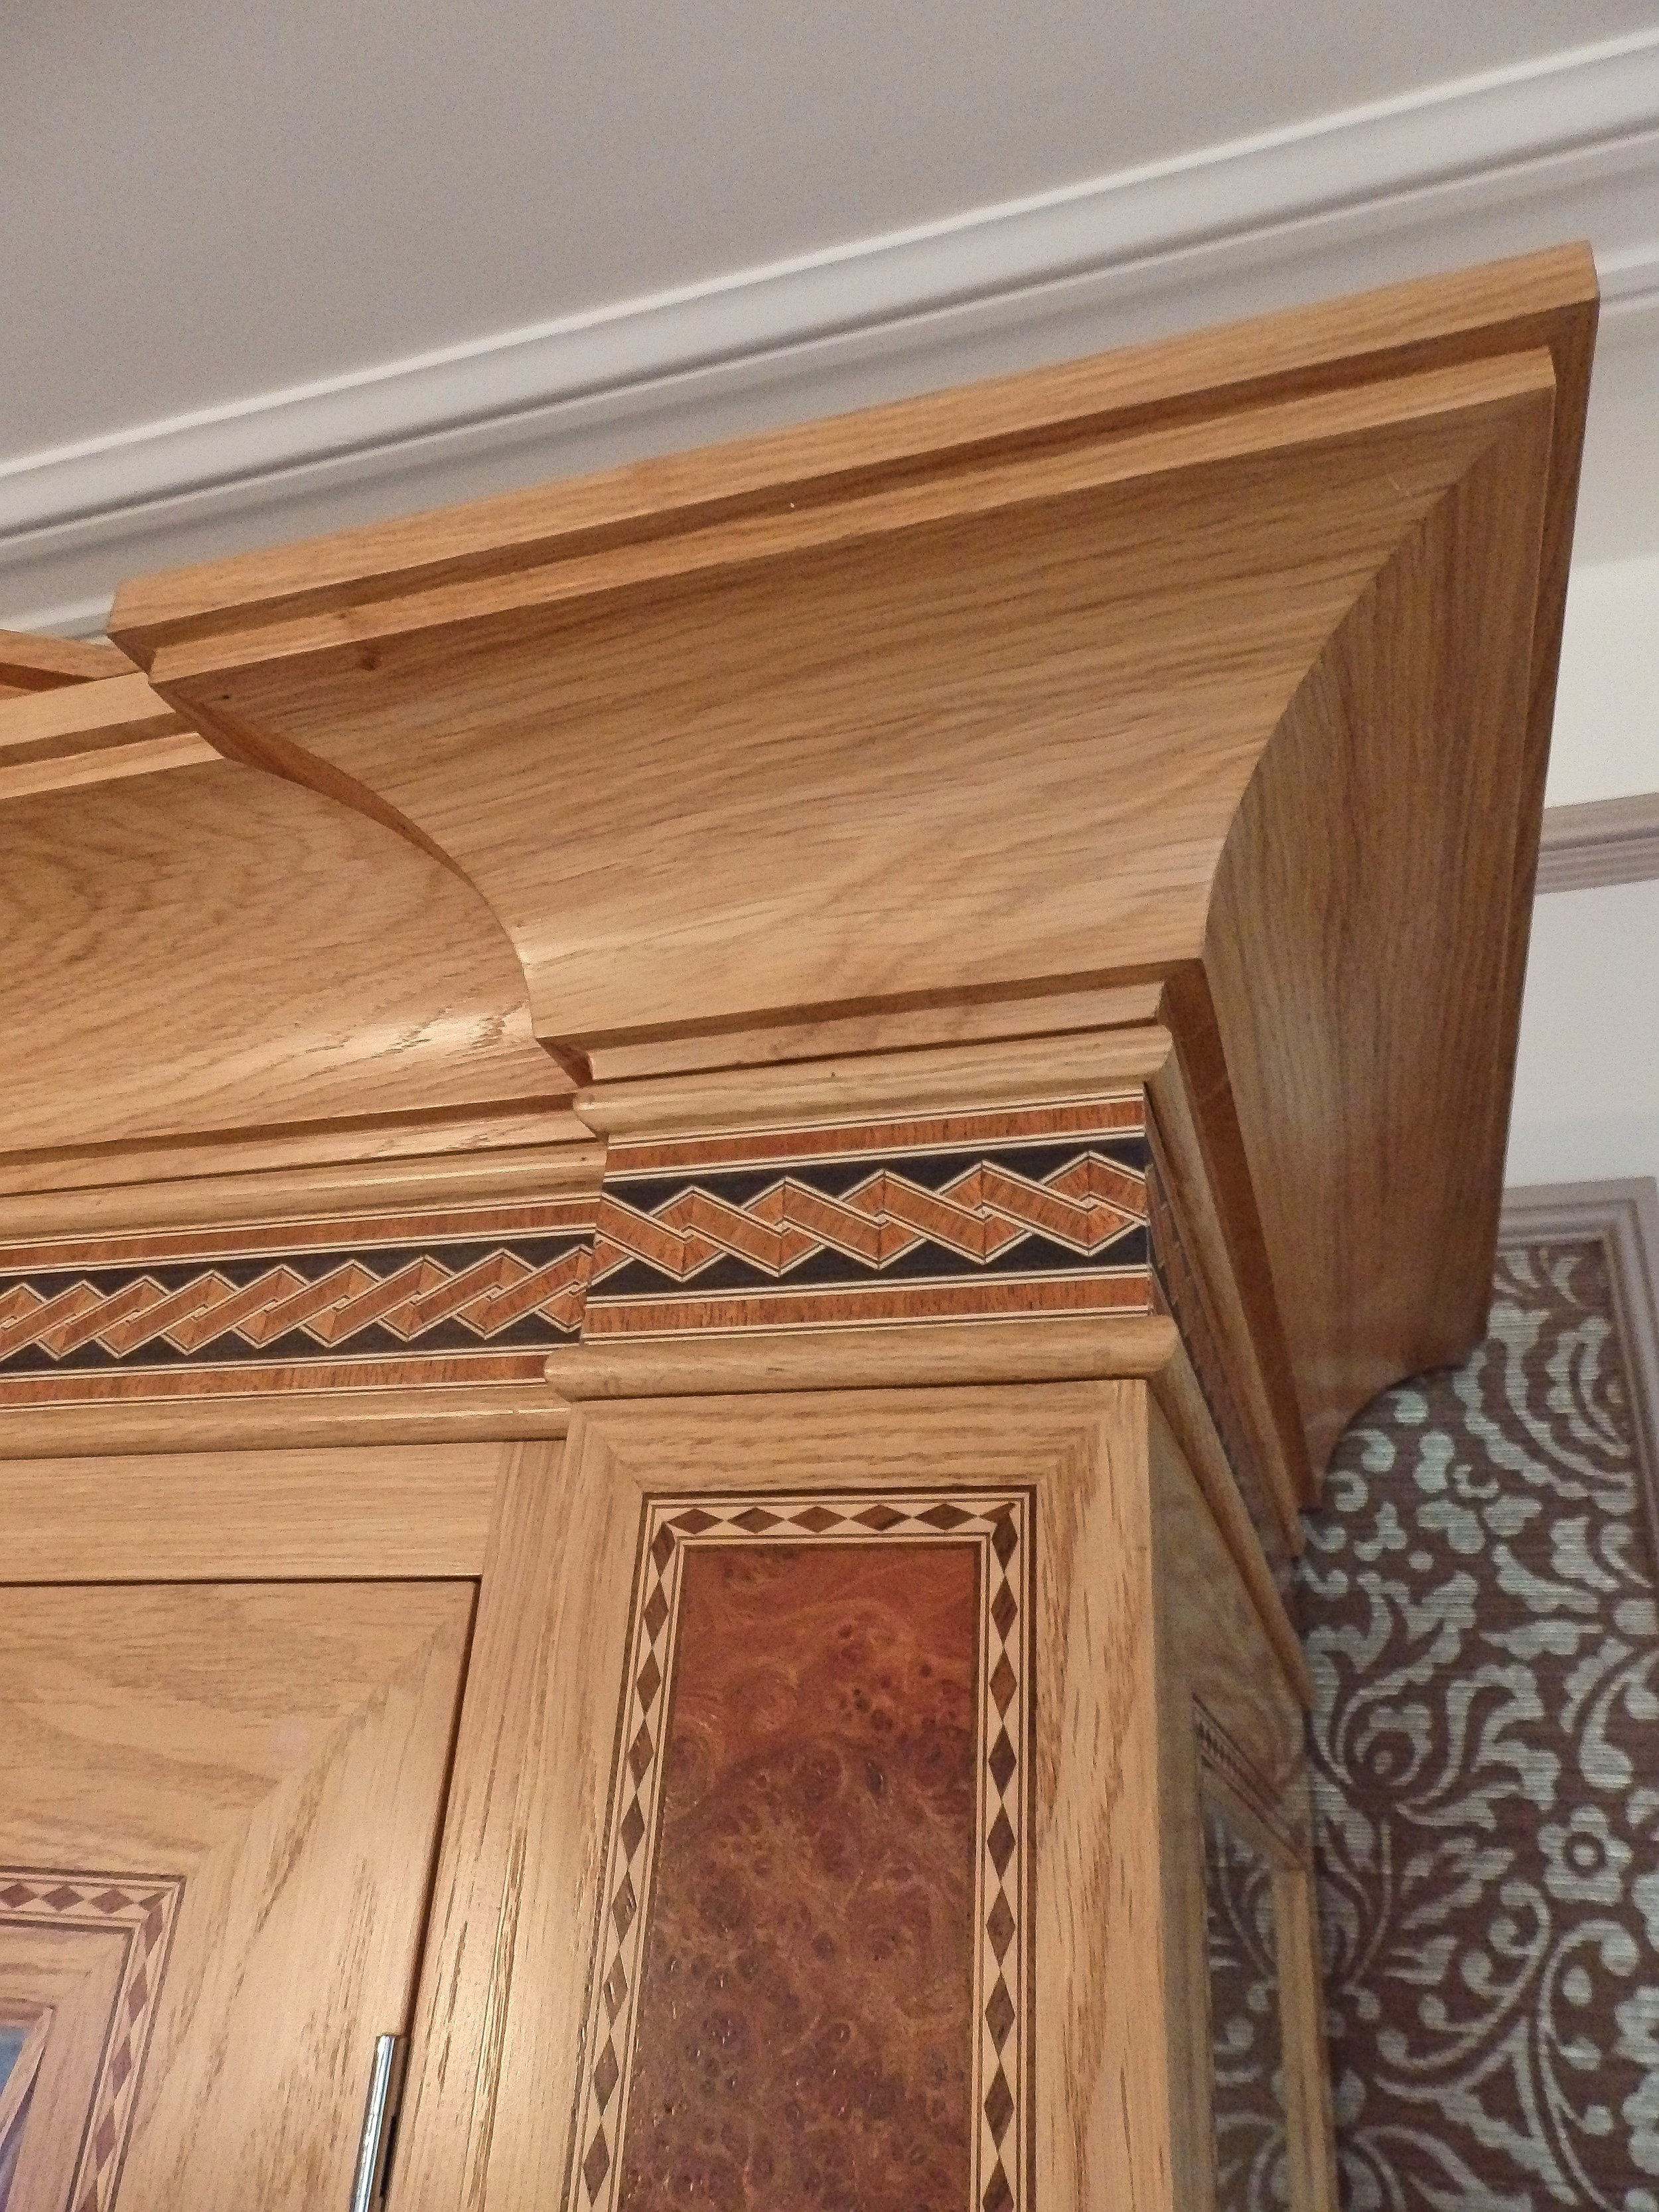 PIC 6 - ANGEL MARTIN - THE MANOR HOUSE - INLAY FURNITURE DETAIL.jpeg